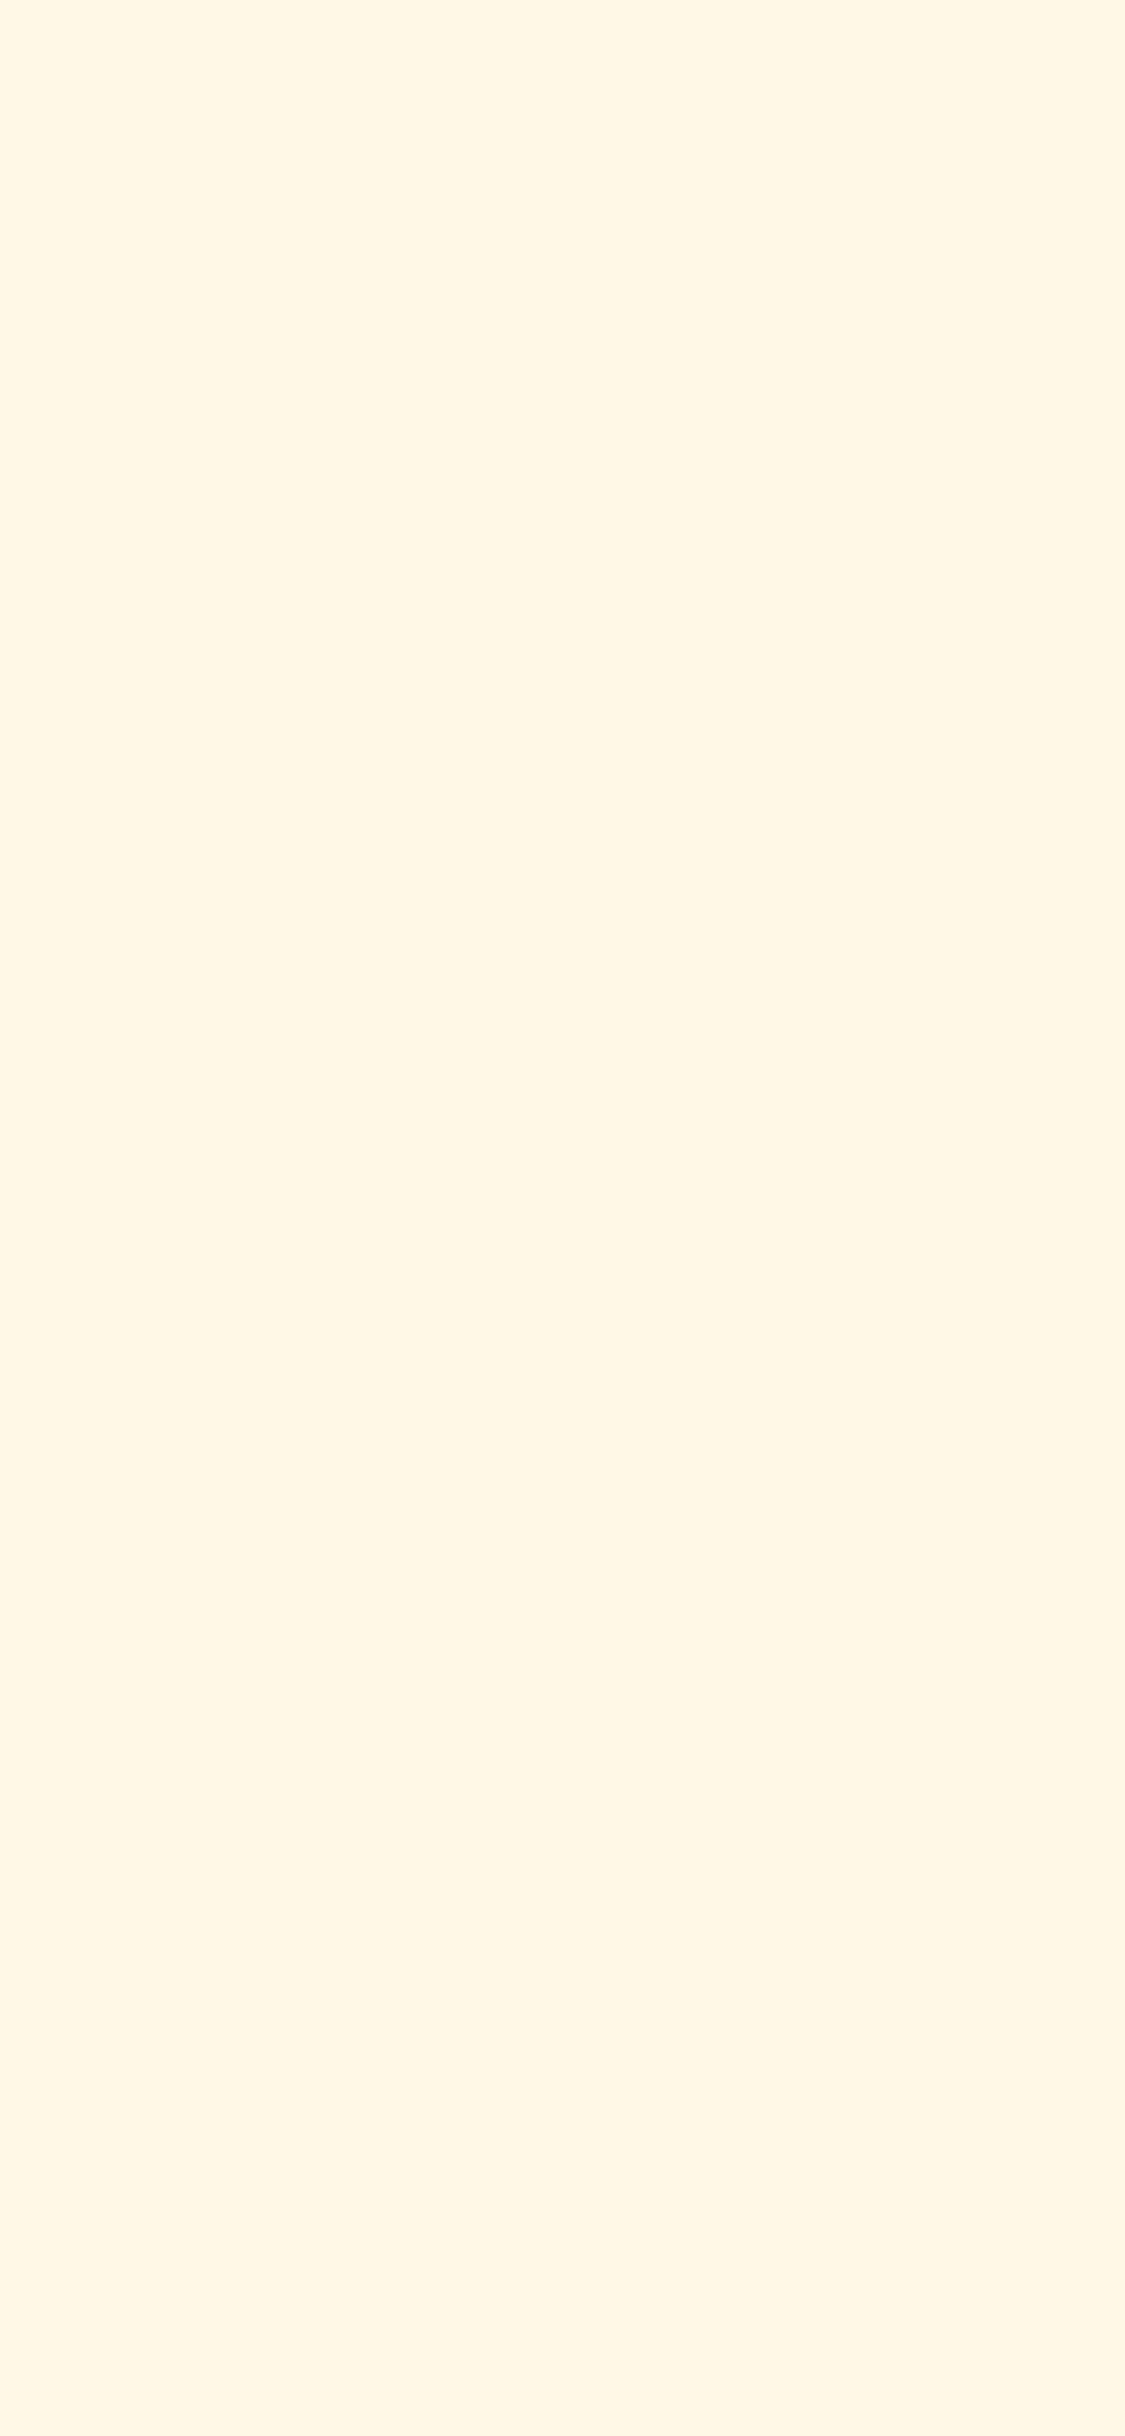 1125x2436 Cosmic Latte Solid Color Background